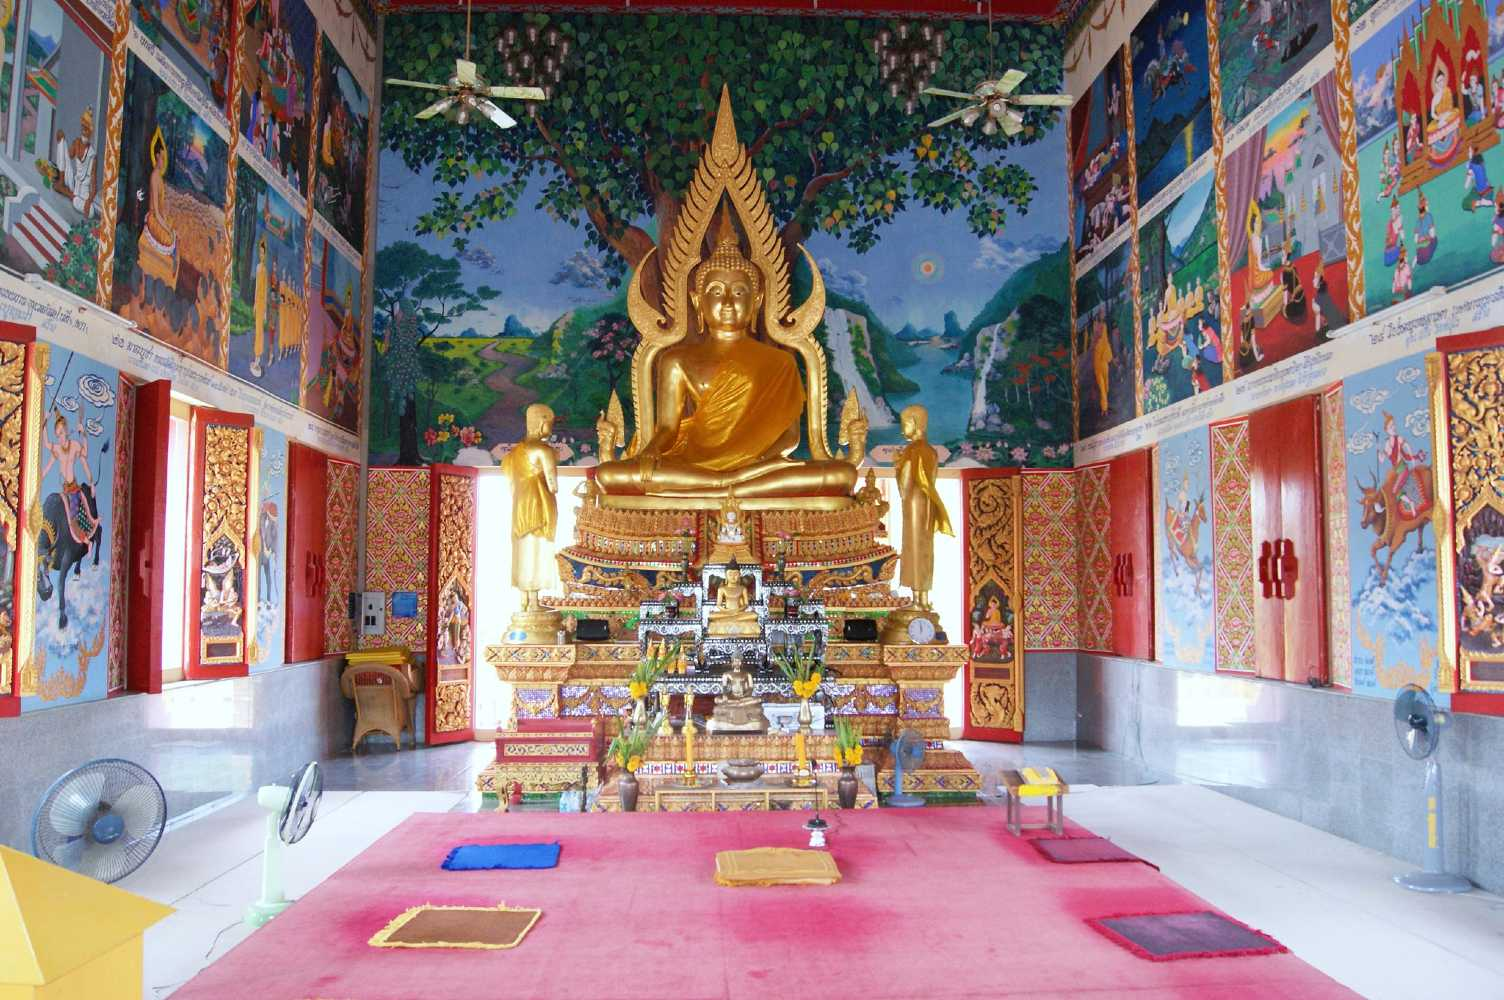 Golden Buddha inside the Wat plai Laem Temple with pictures on the wall of Buddha's life lessons